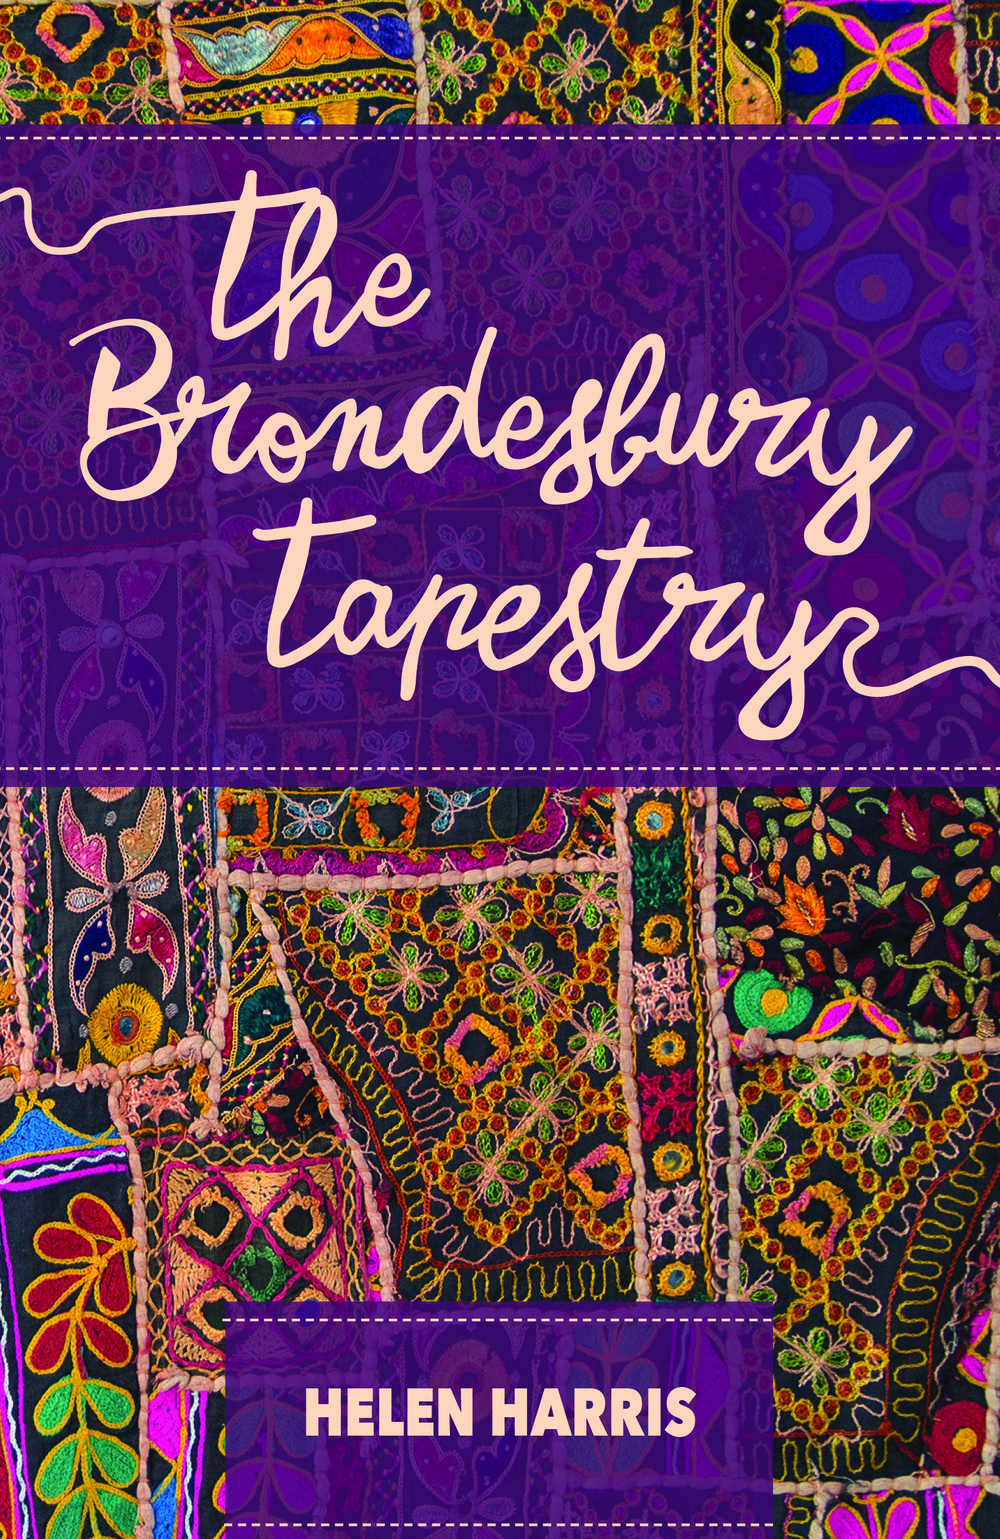 Brondesbury Tapestry front cover high res.jpg